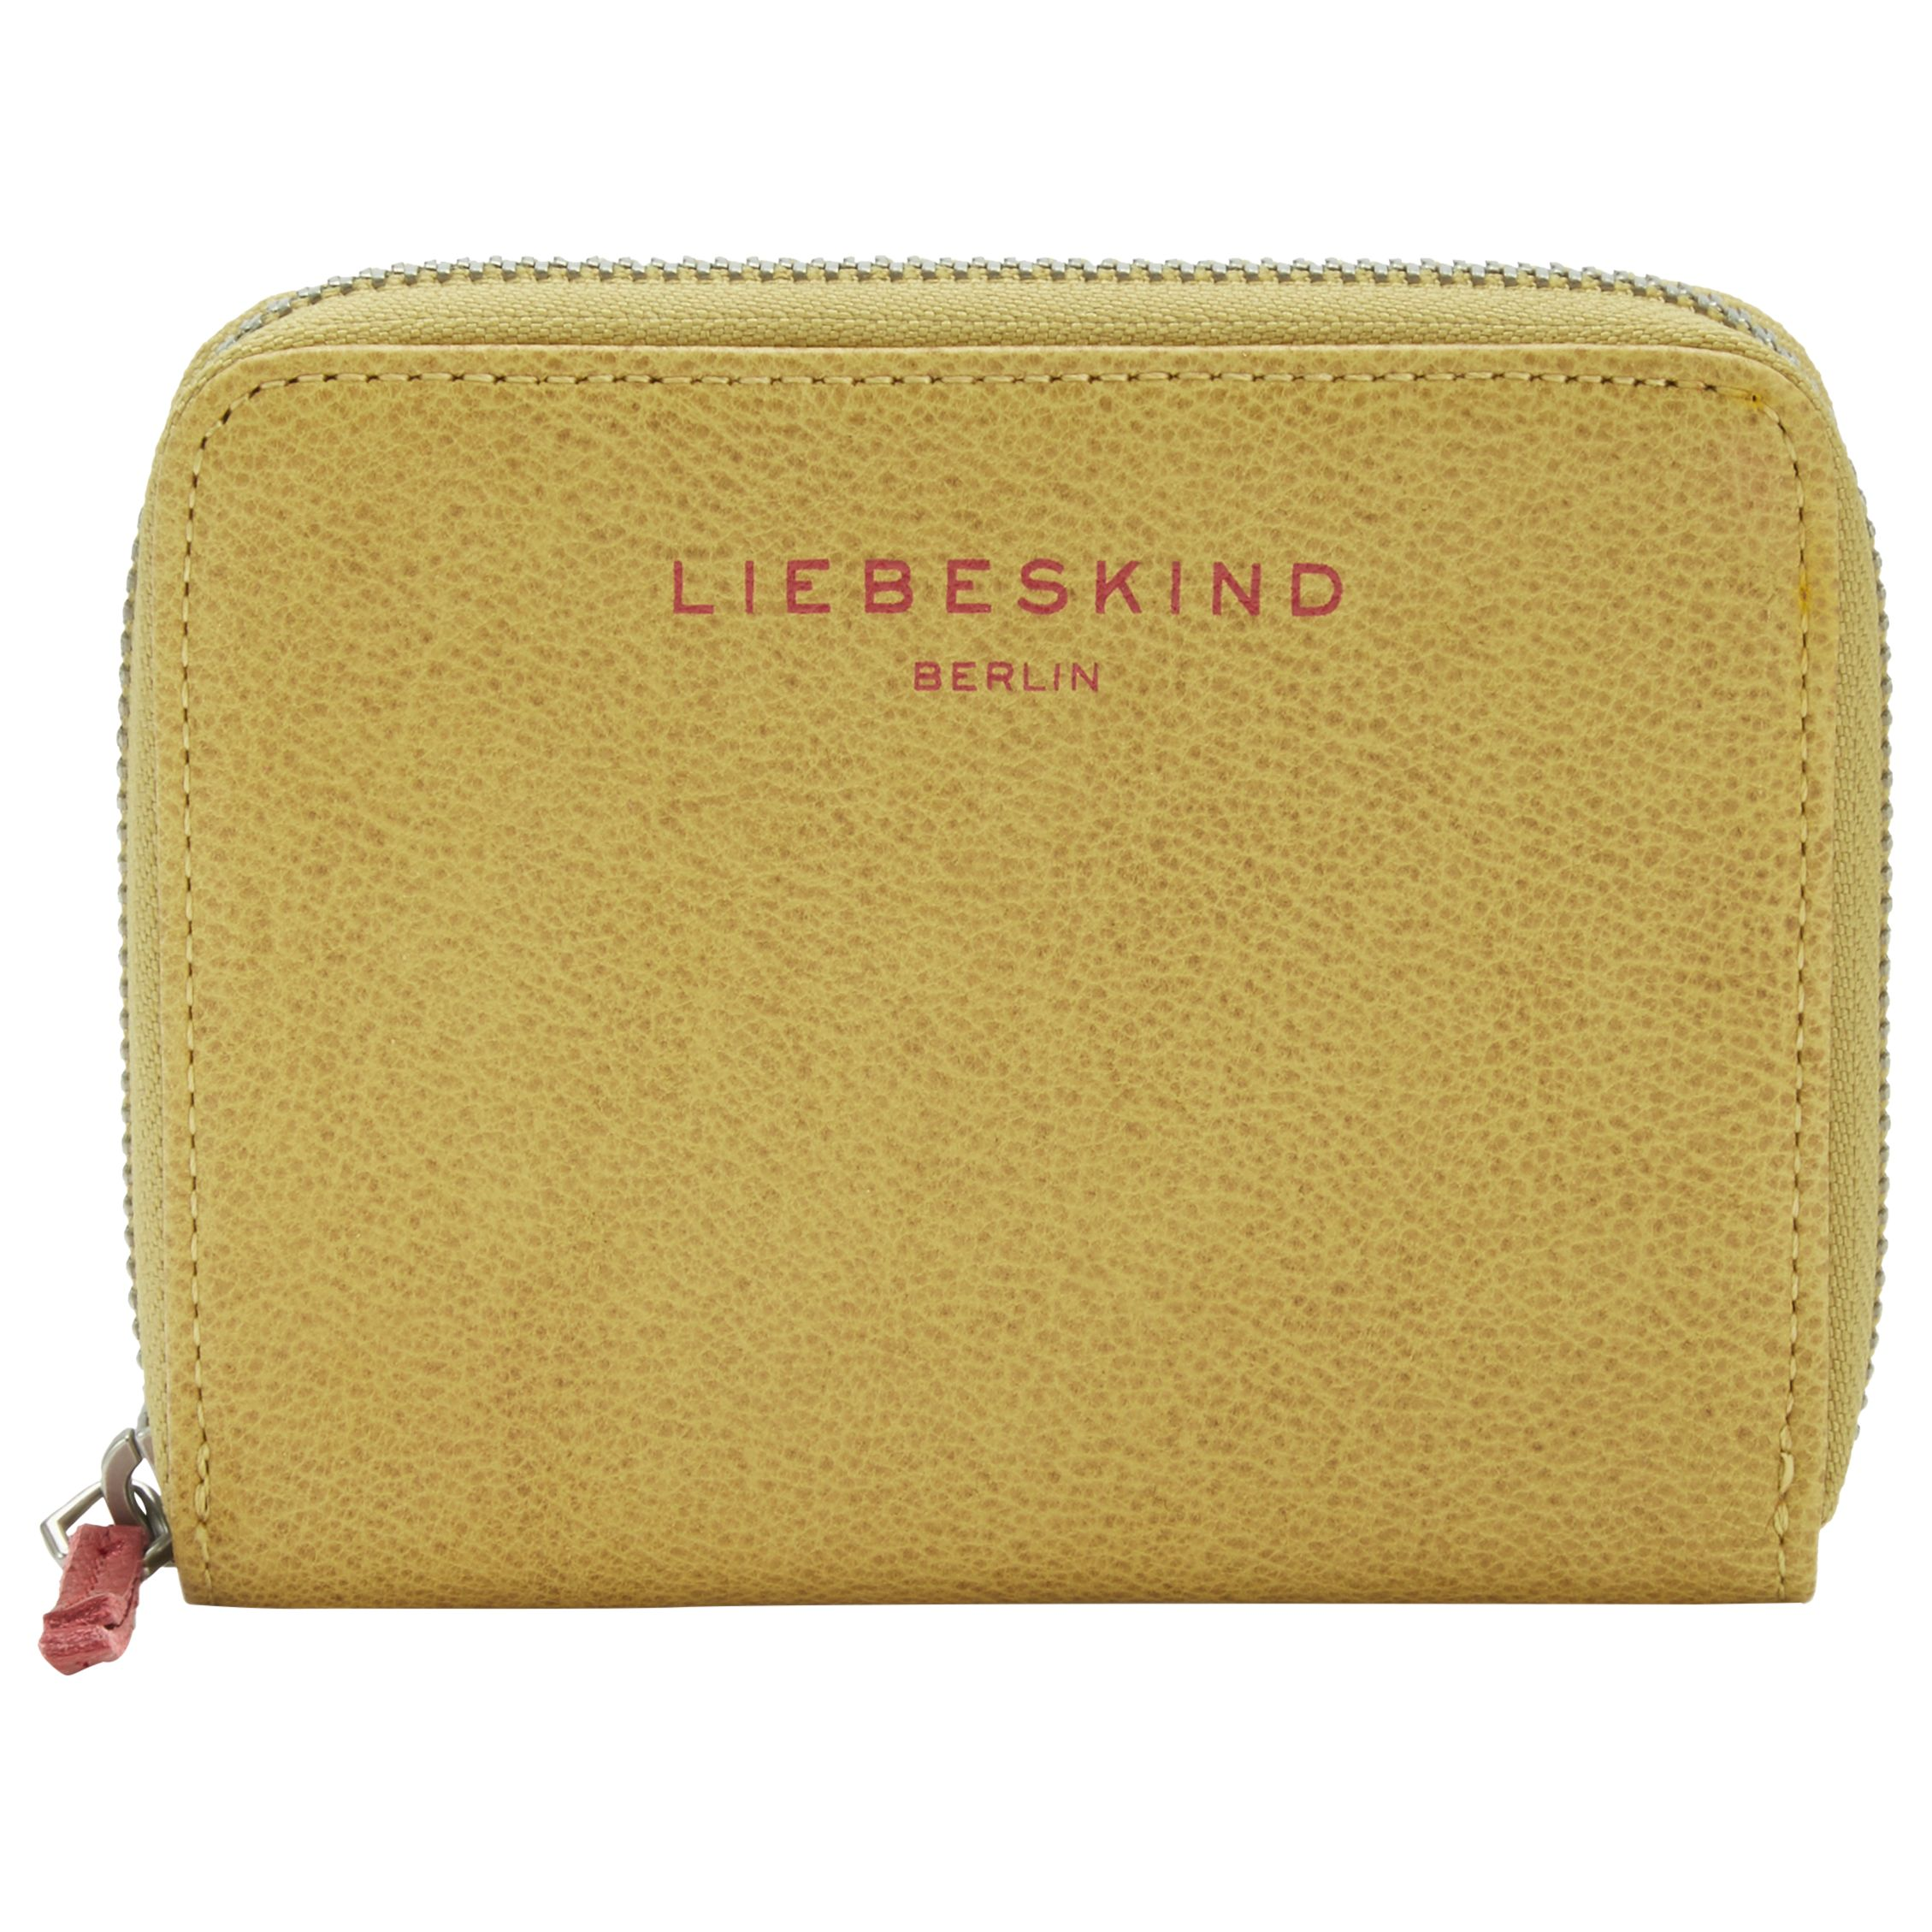 Liebeskind Liebeskind Conny F7 Leather Zip Around Purse